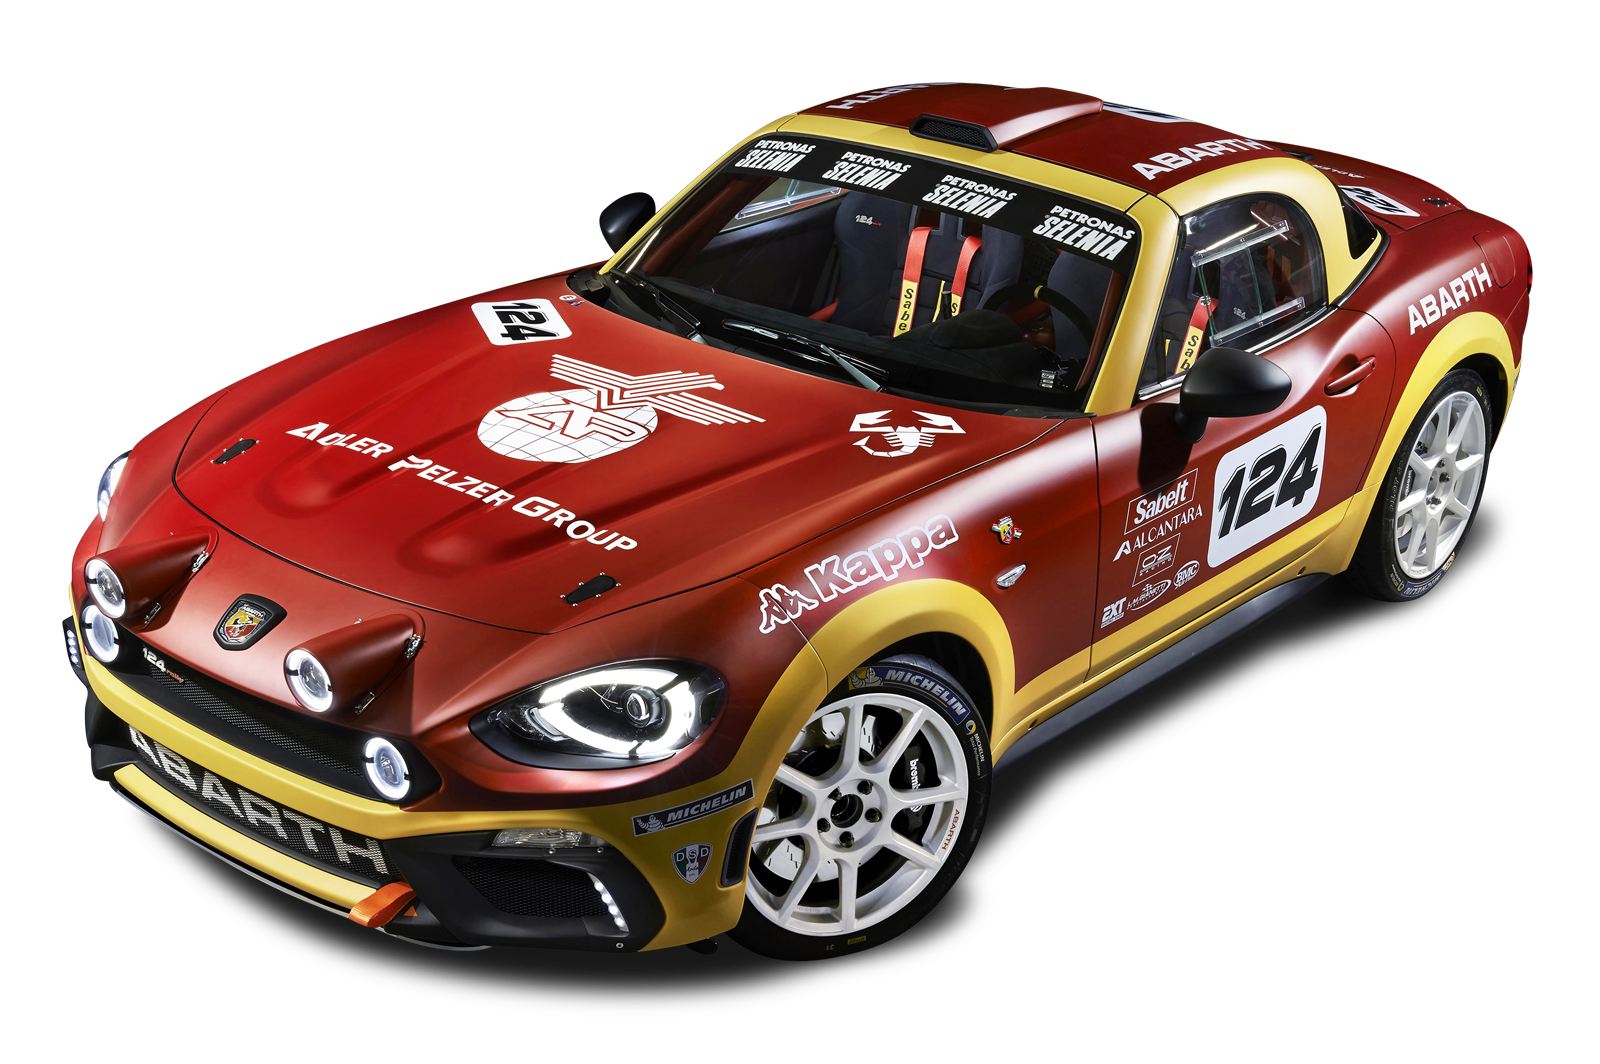 Rally car clipart clip art royalty free library Red Fiat 124 Spider Abarth Rally Car PNG Image - PurePNG | Free ... clip art royalty free library